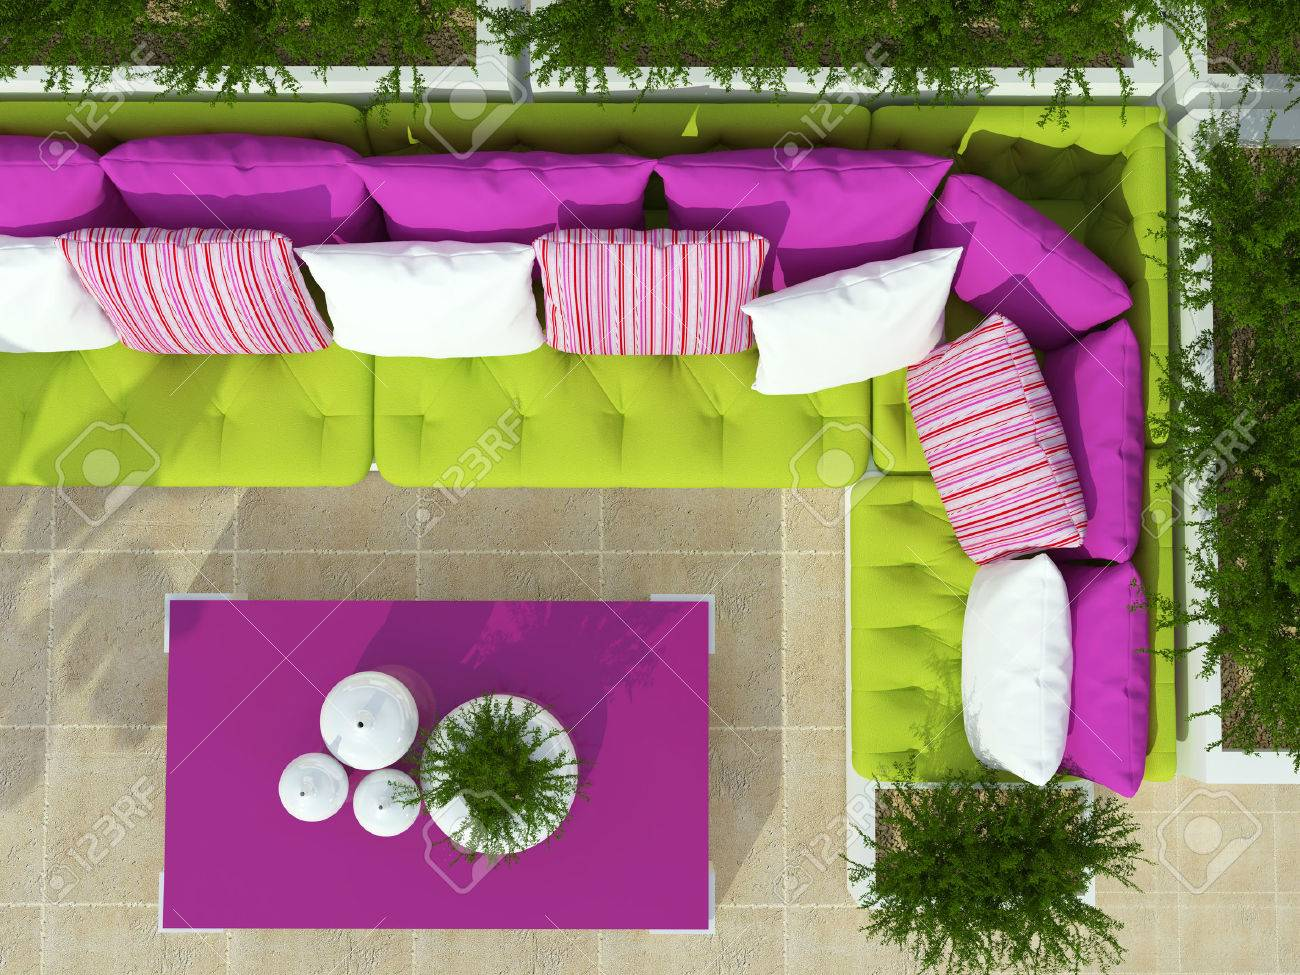 Outdoor Patio Seating Area With Big Green Sofa, Pink Table And Plants.  Stock Photo